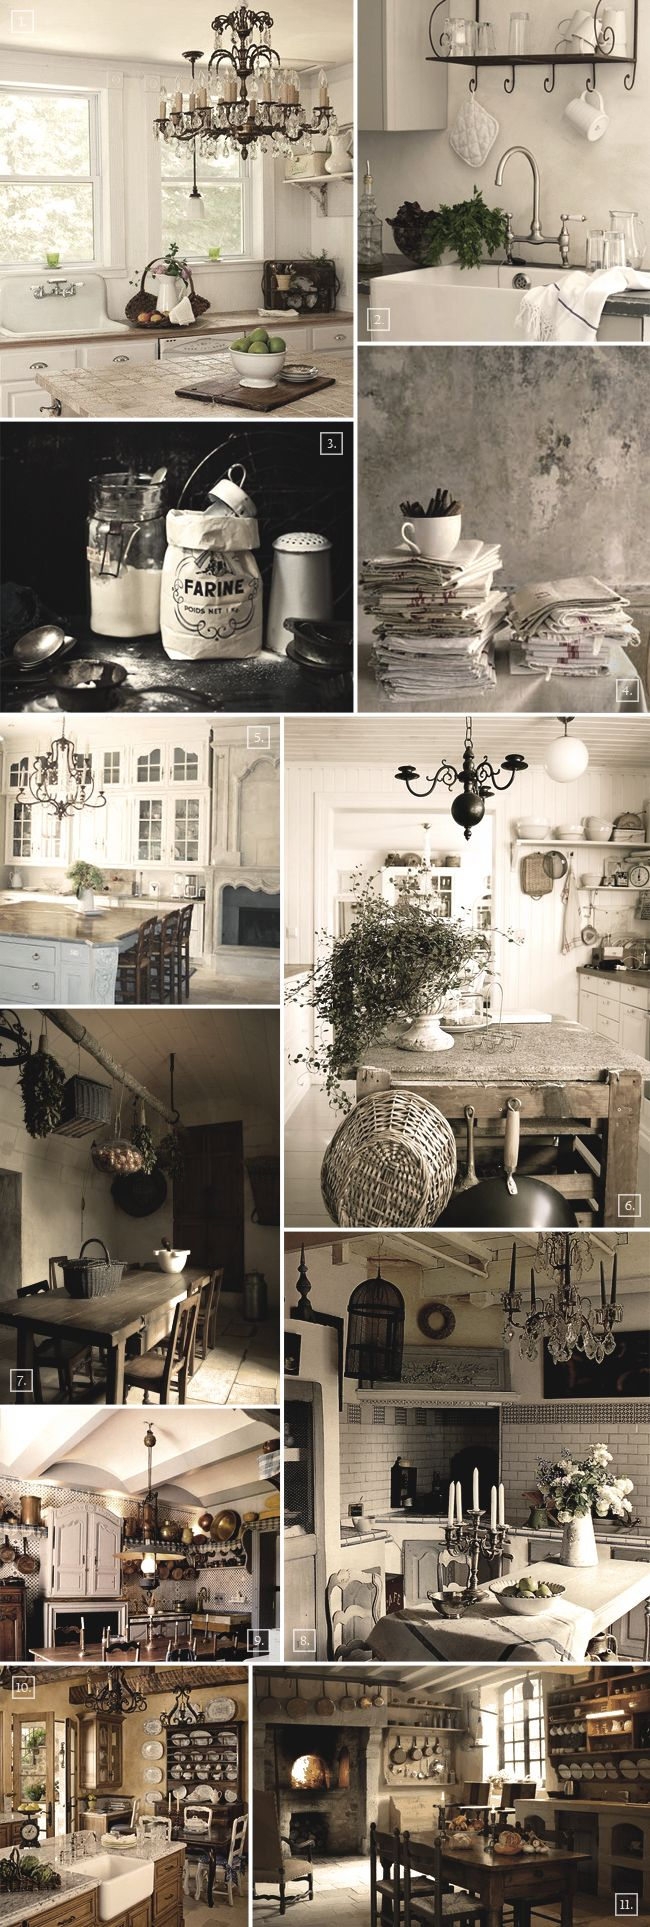 French Kitchen Decor and Designs Mood Board -   19 french kitchen decor ideas